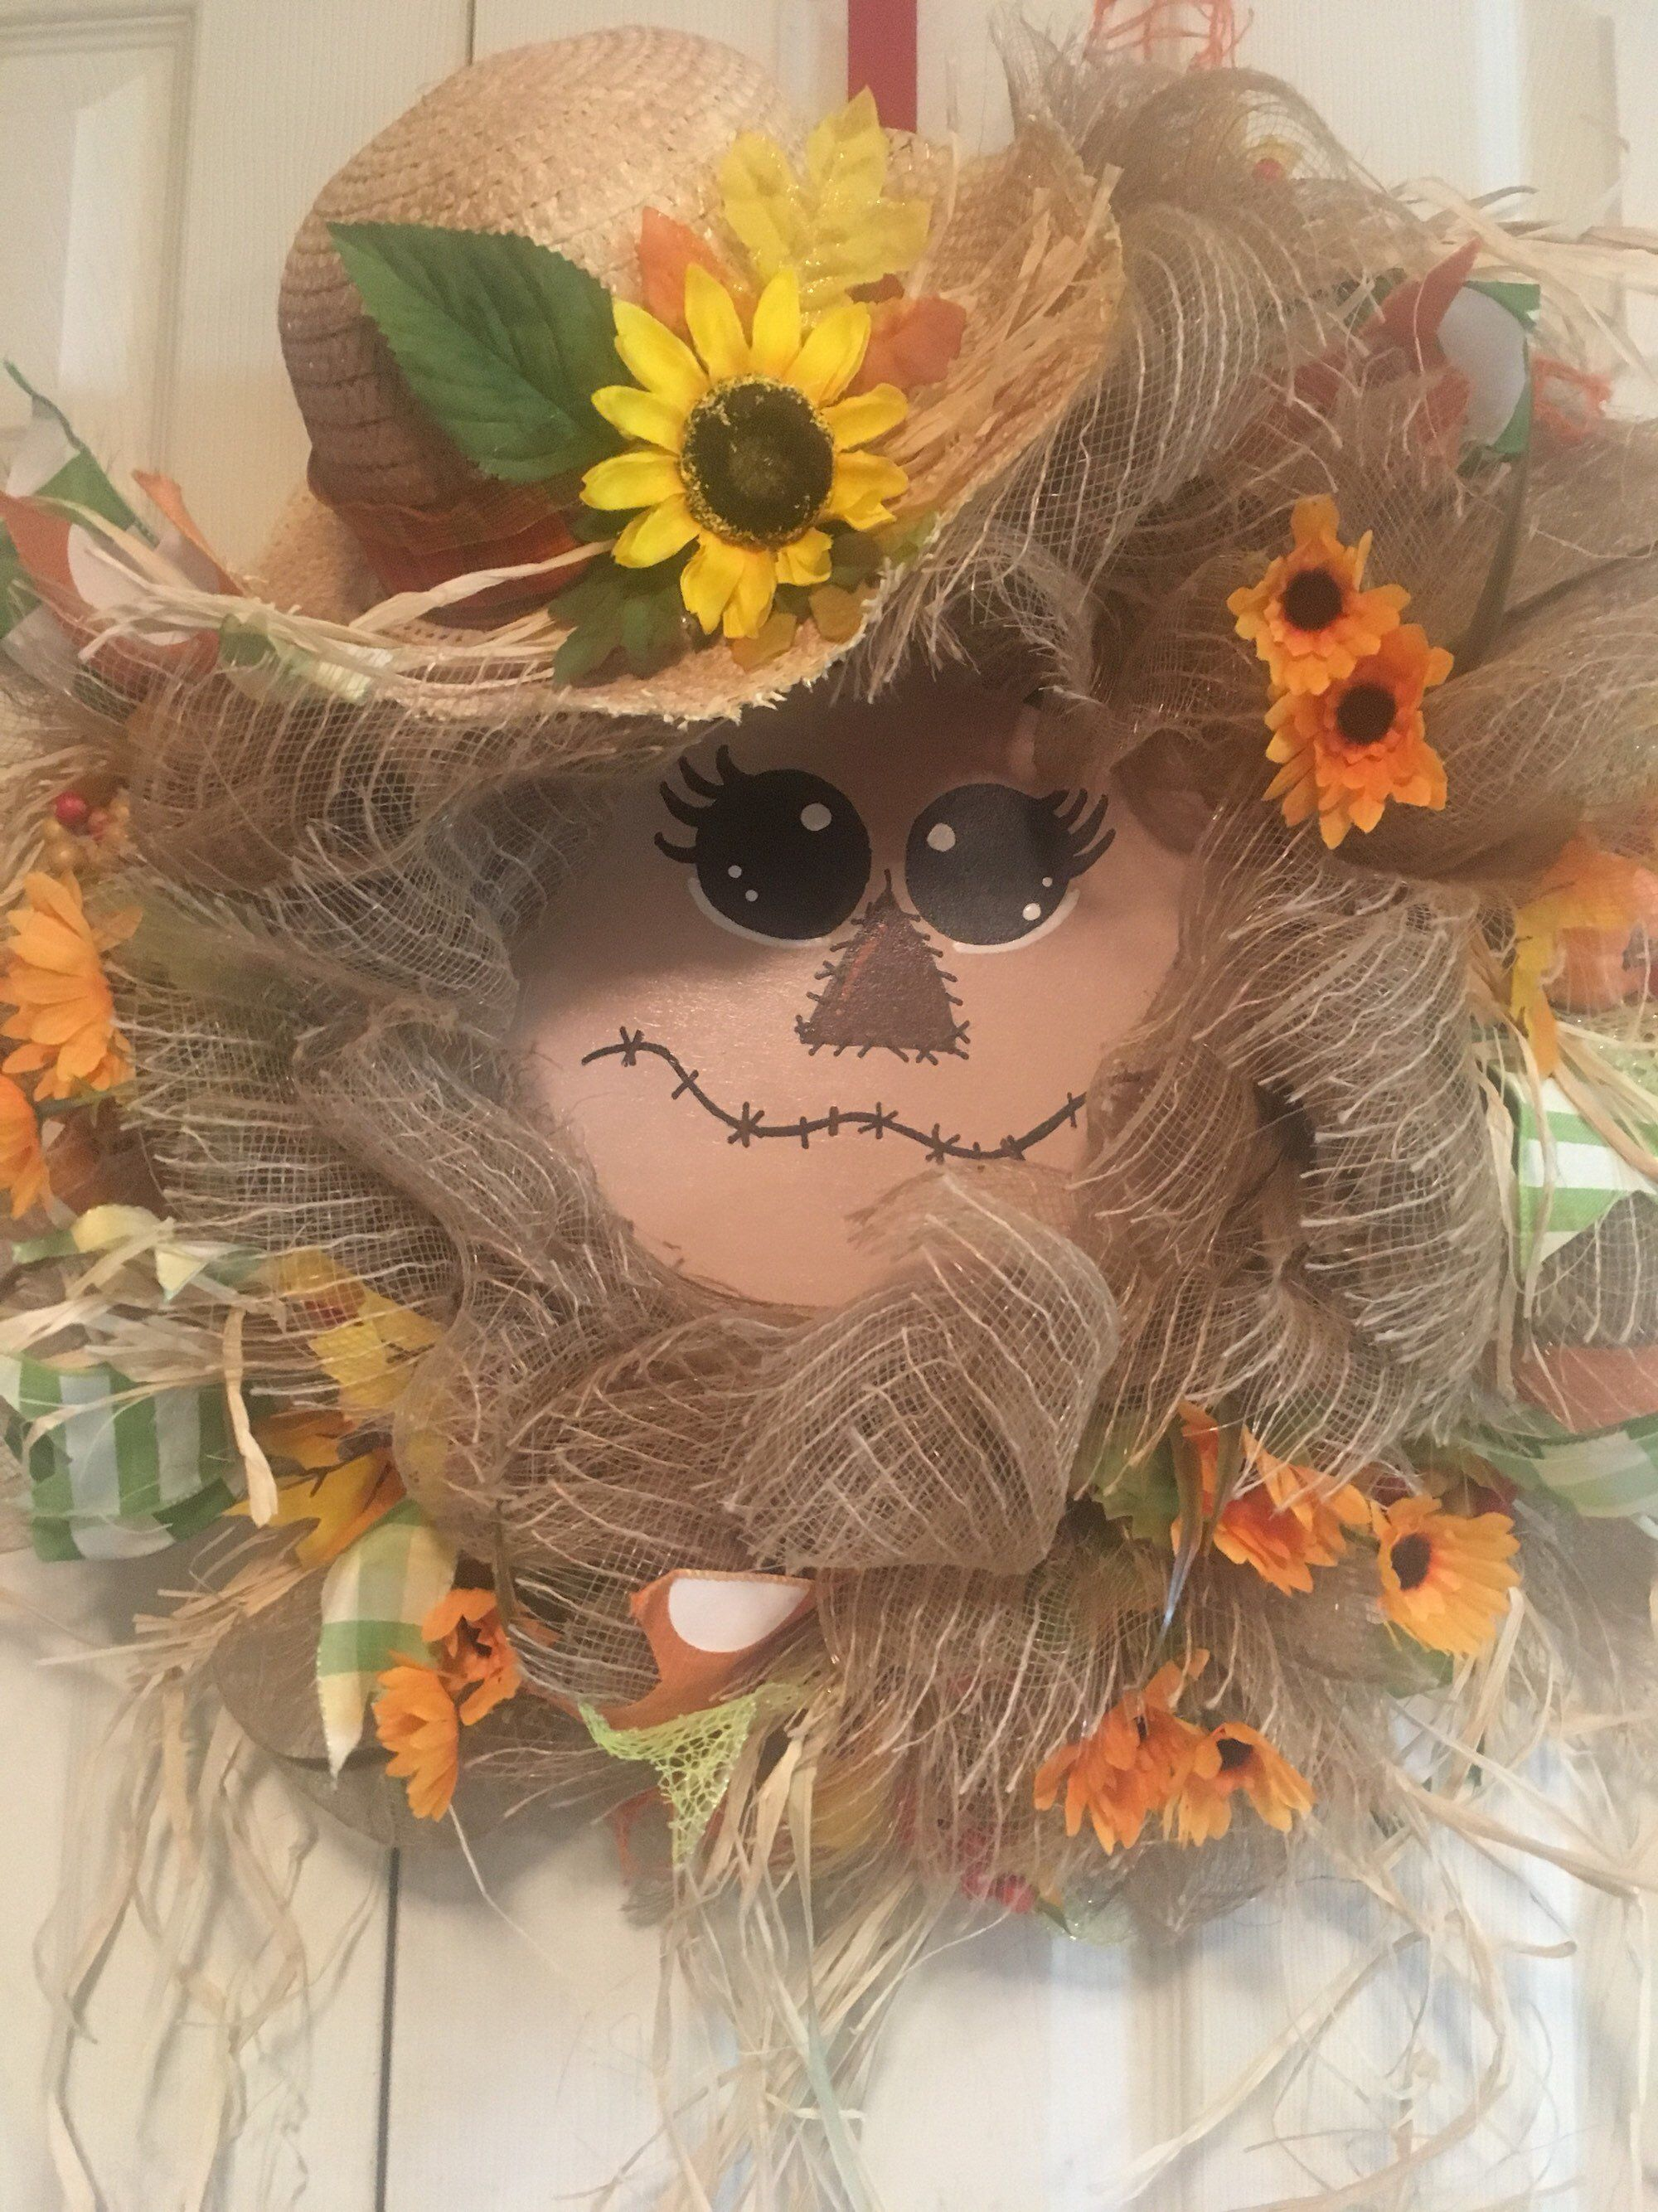 Scarecrow Wreath, Painted Scarecrow Face Wreath, Fall Scarecrow Wreath, Handpainted Scarecrow Face Wreath, Scarecrow Mesh Wreath, Fall #scarecrowwreath